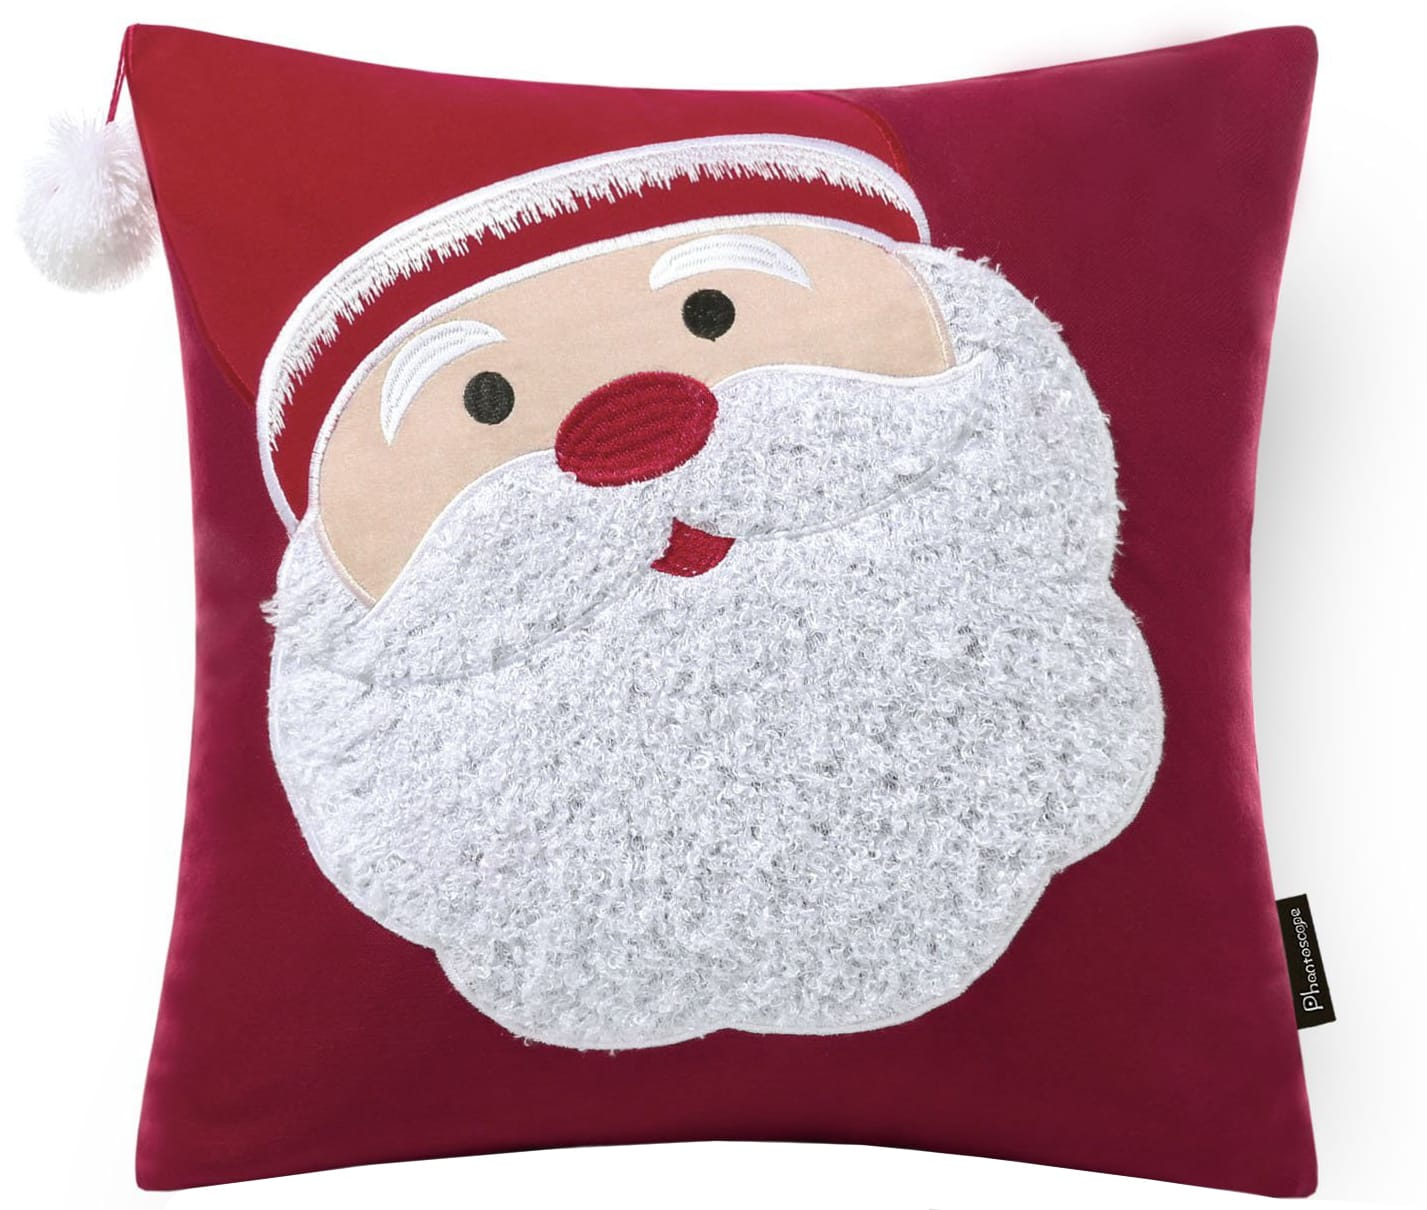 Cushion Covers Christmas 30 Christmas Pillow Covers For Under 13 Holiday Pillow